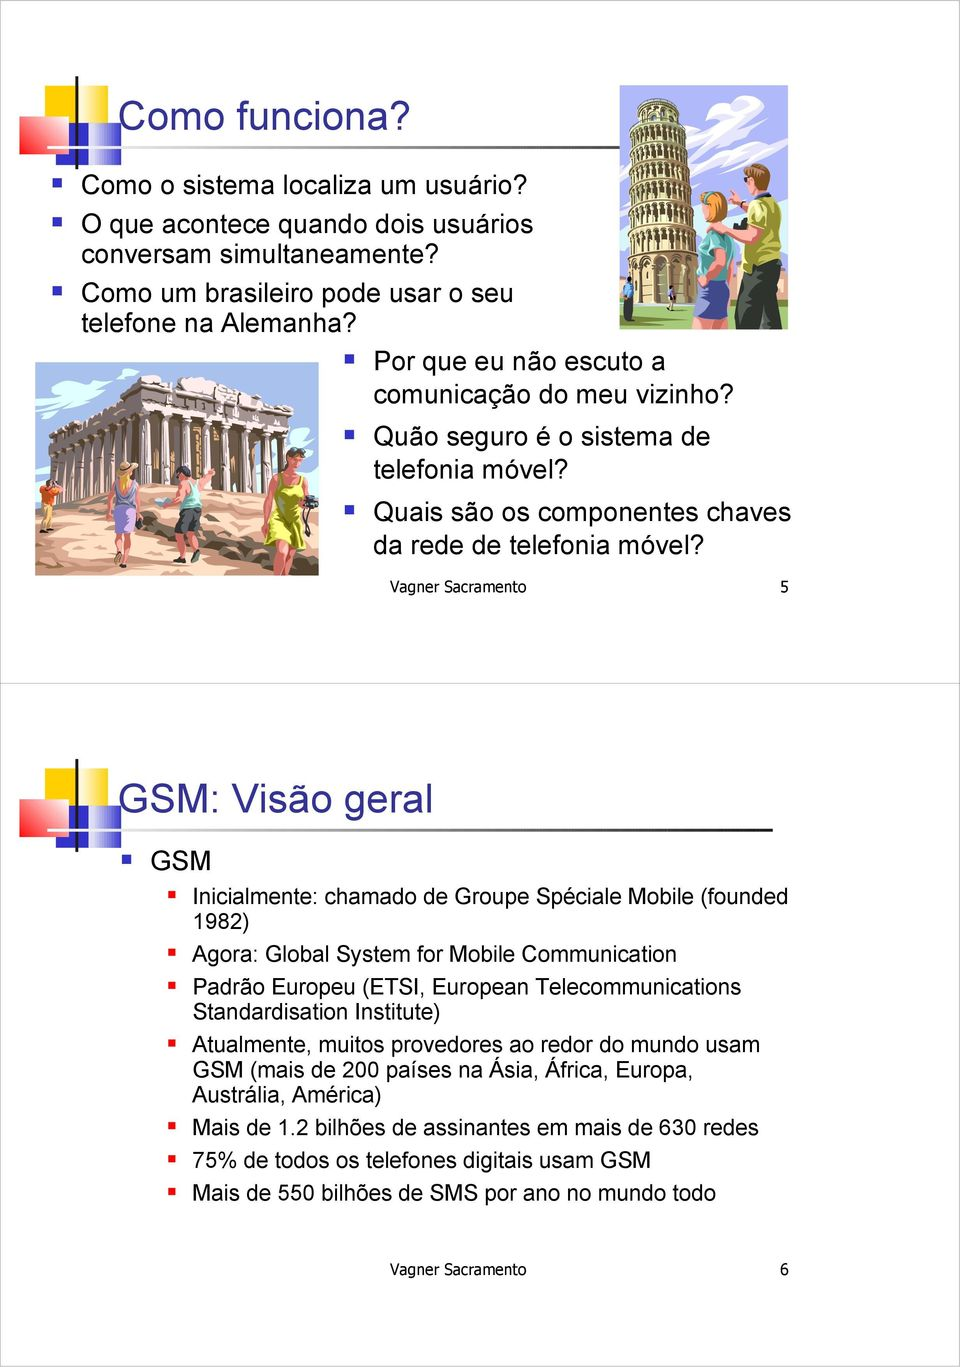 Vagner Sacramento 5 GSM: Visão geral GSM Inicialmente: chamado de Groupe Spéciale Mobile (founded 1982) Agora: Global System for Mobile Communication Padrão Europeu (ETSI, European Telecommunications